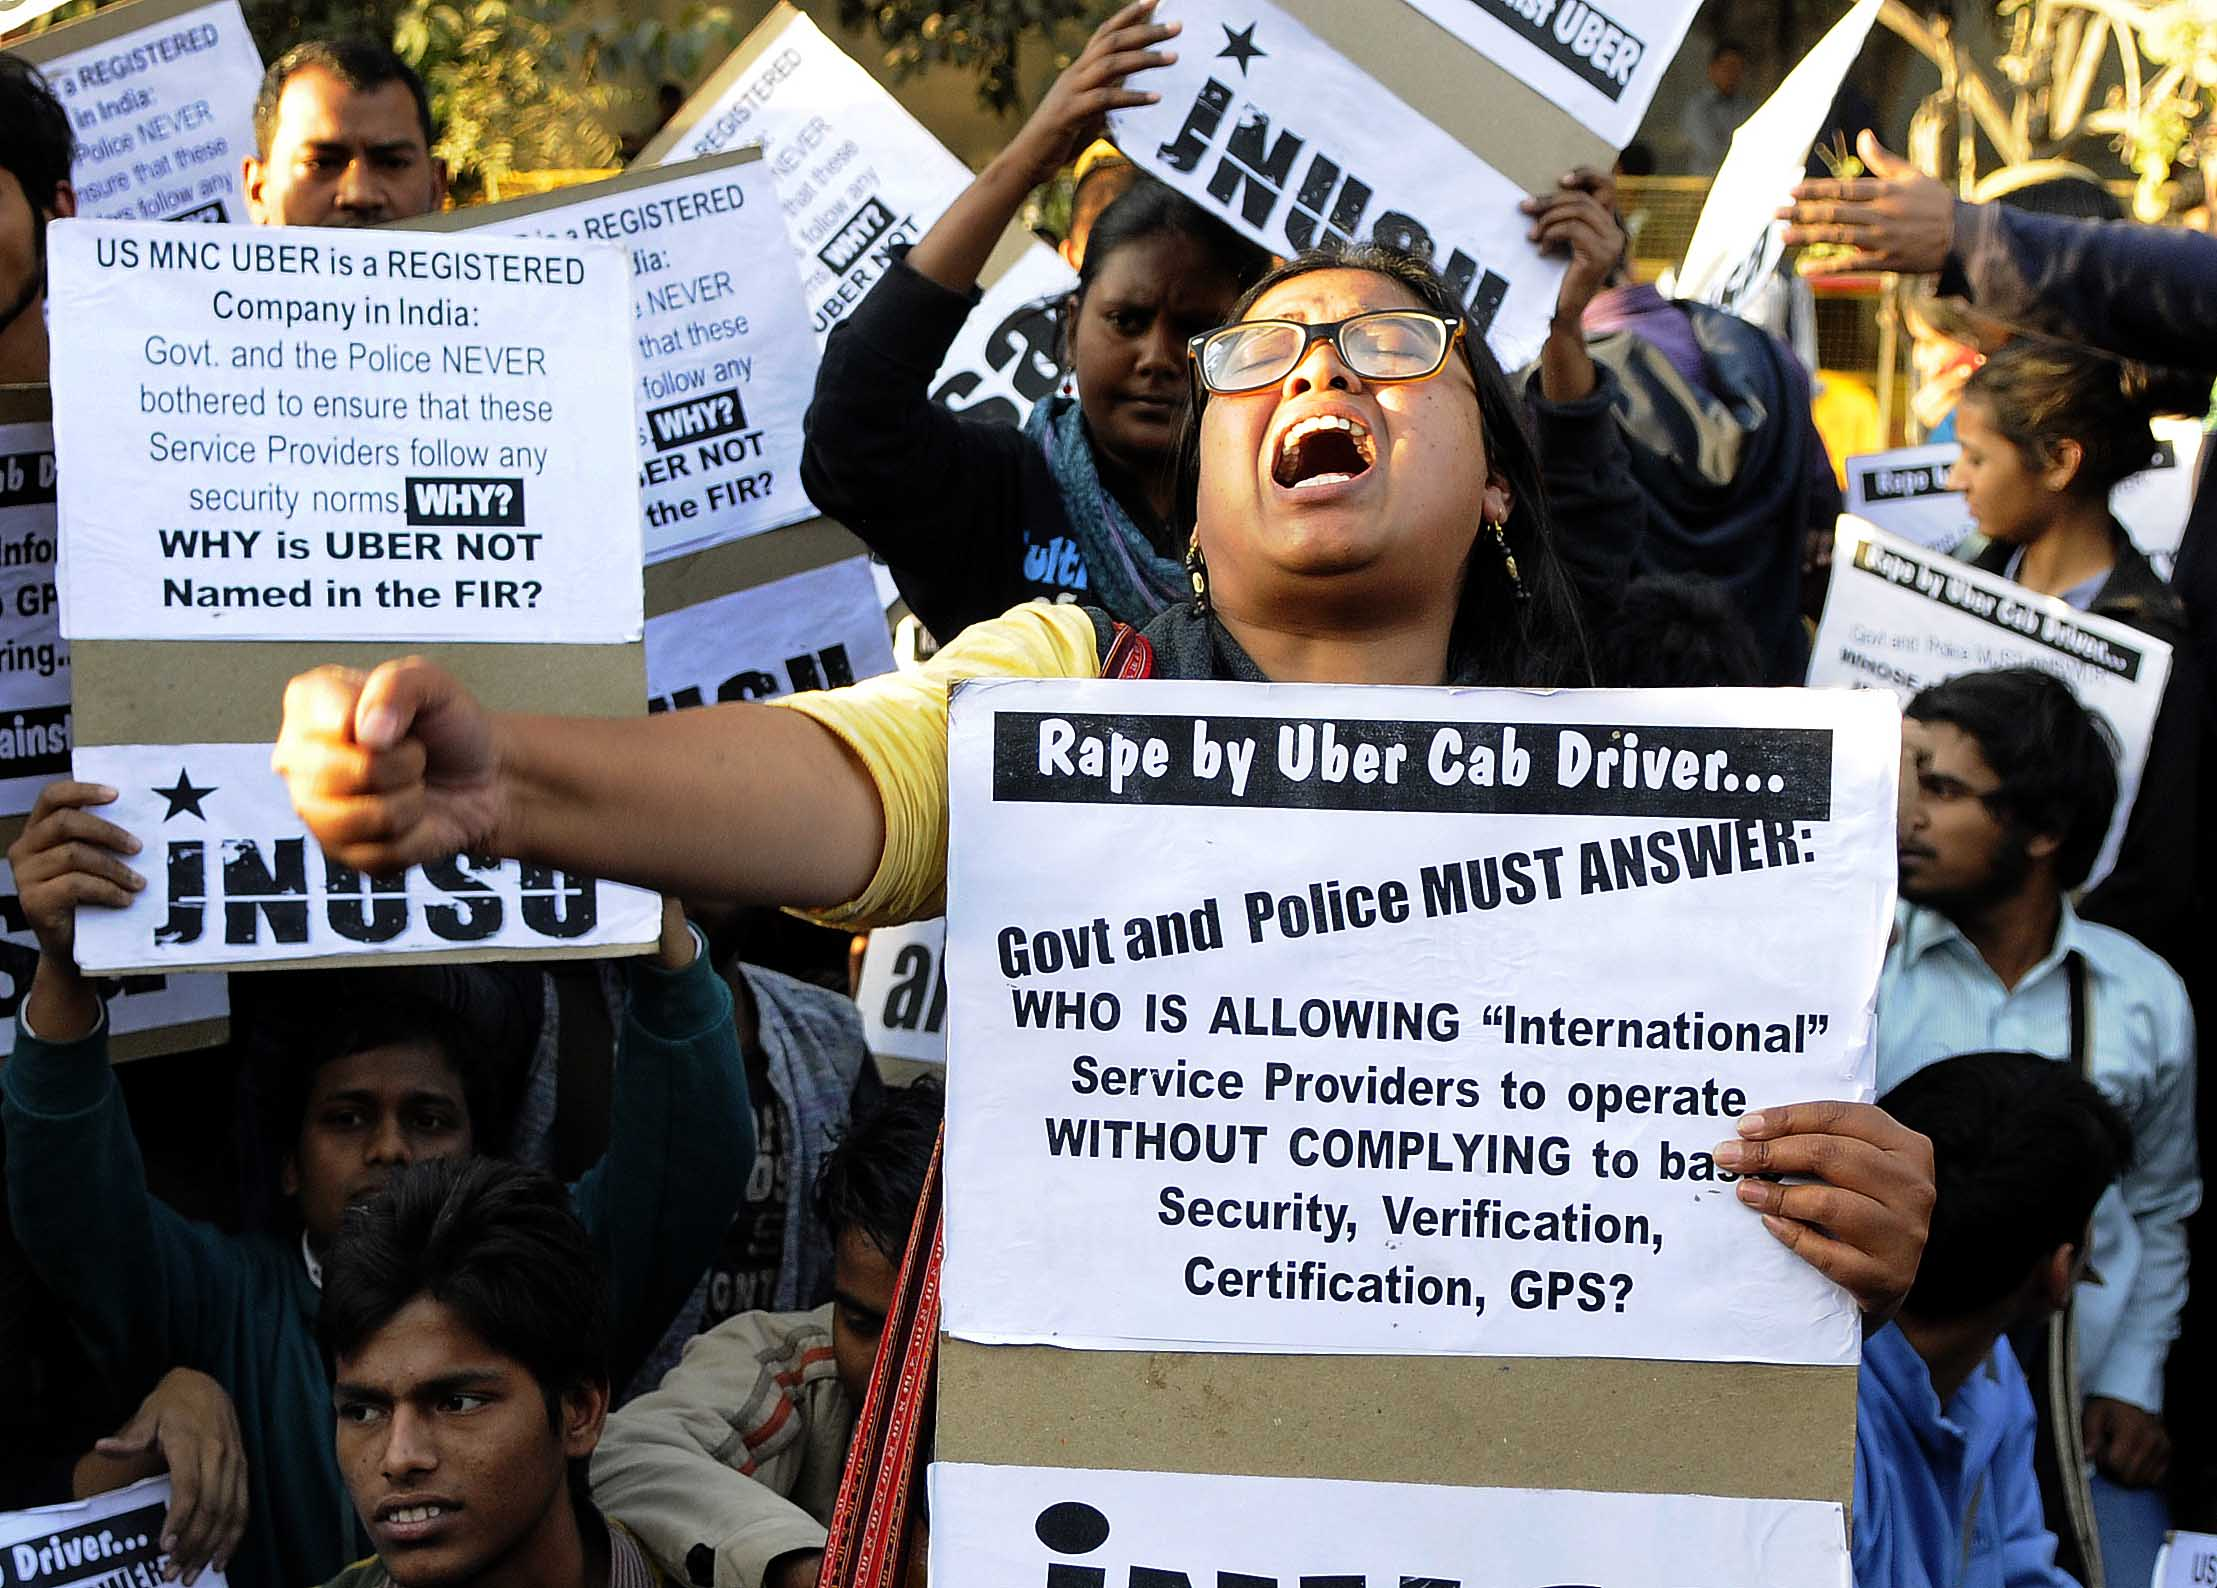 Jawaharlal Nehru University Students' Union (JNUSU) shout slogan against Delhi Police, hold protest against the shocking rape by UBER Cab Driver at PHQ ITO, on December 7, 2014 in New Delhi, India.